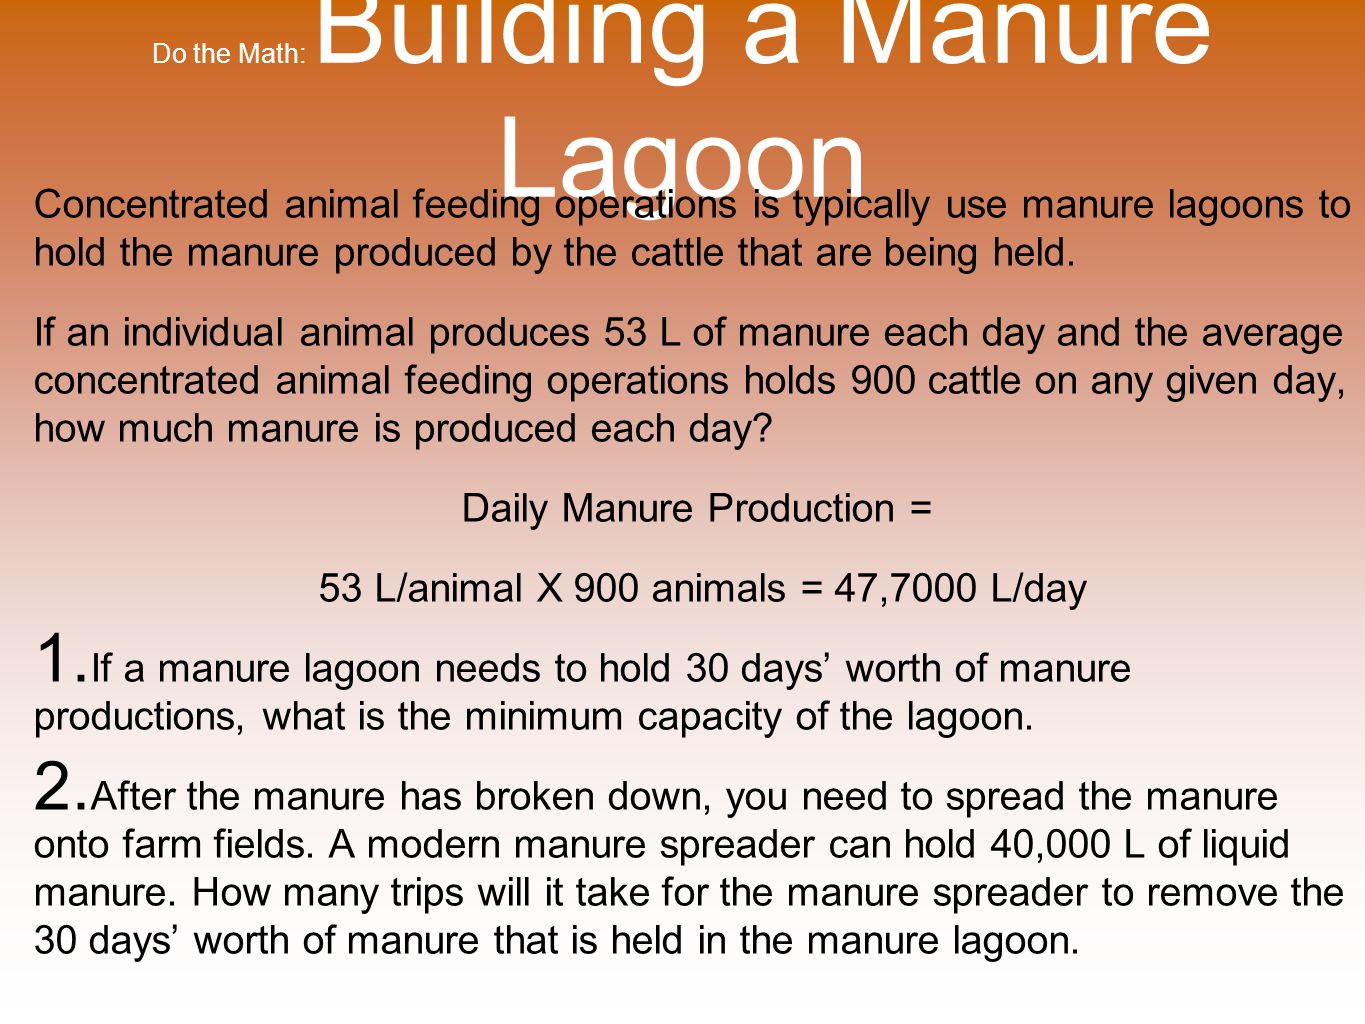 Do the Math: Building a Manure Lagoon